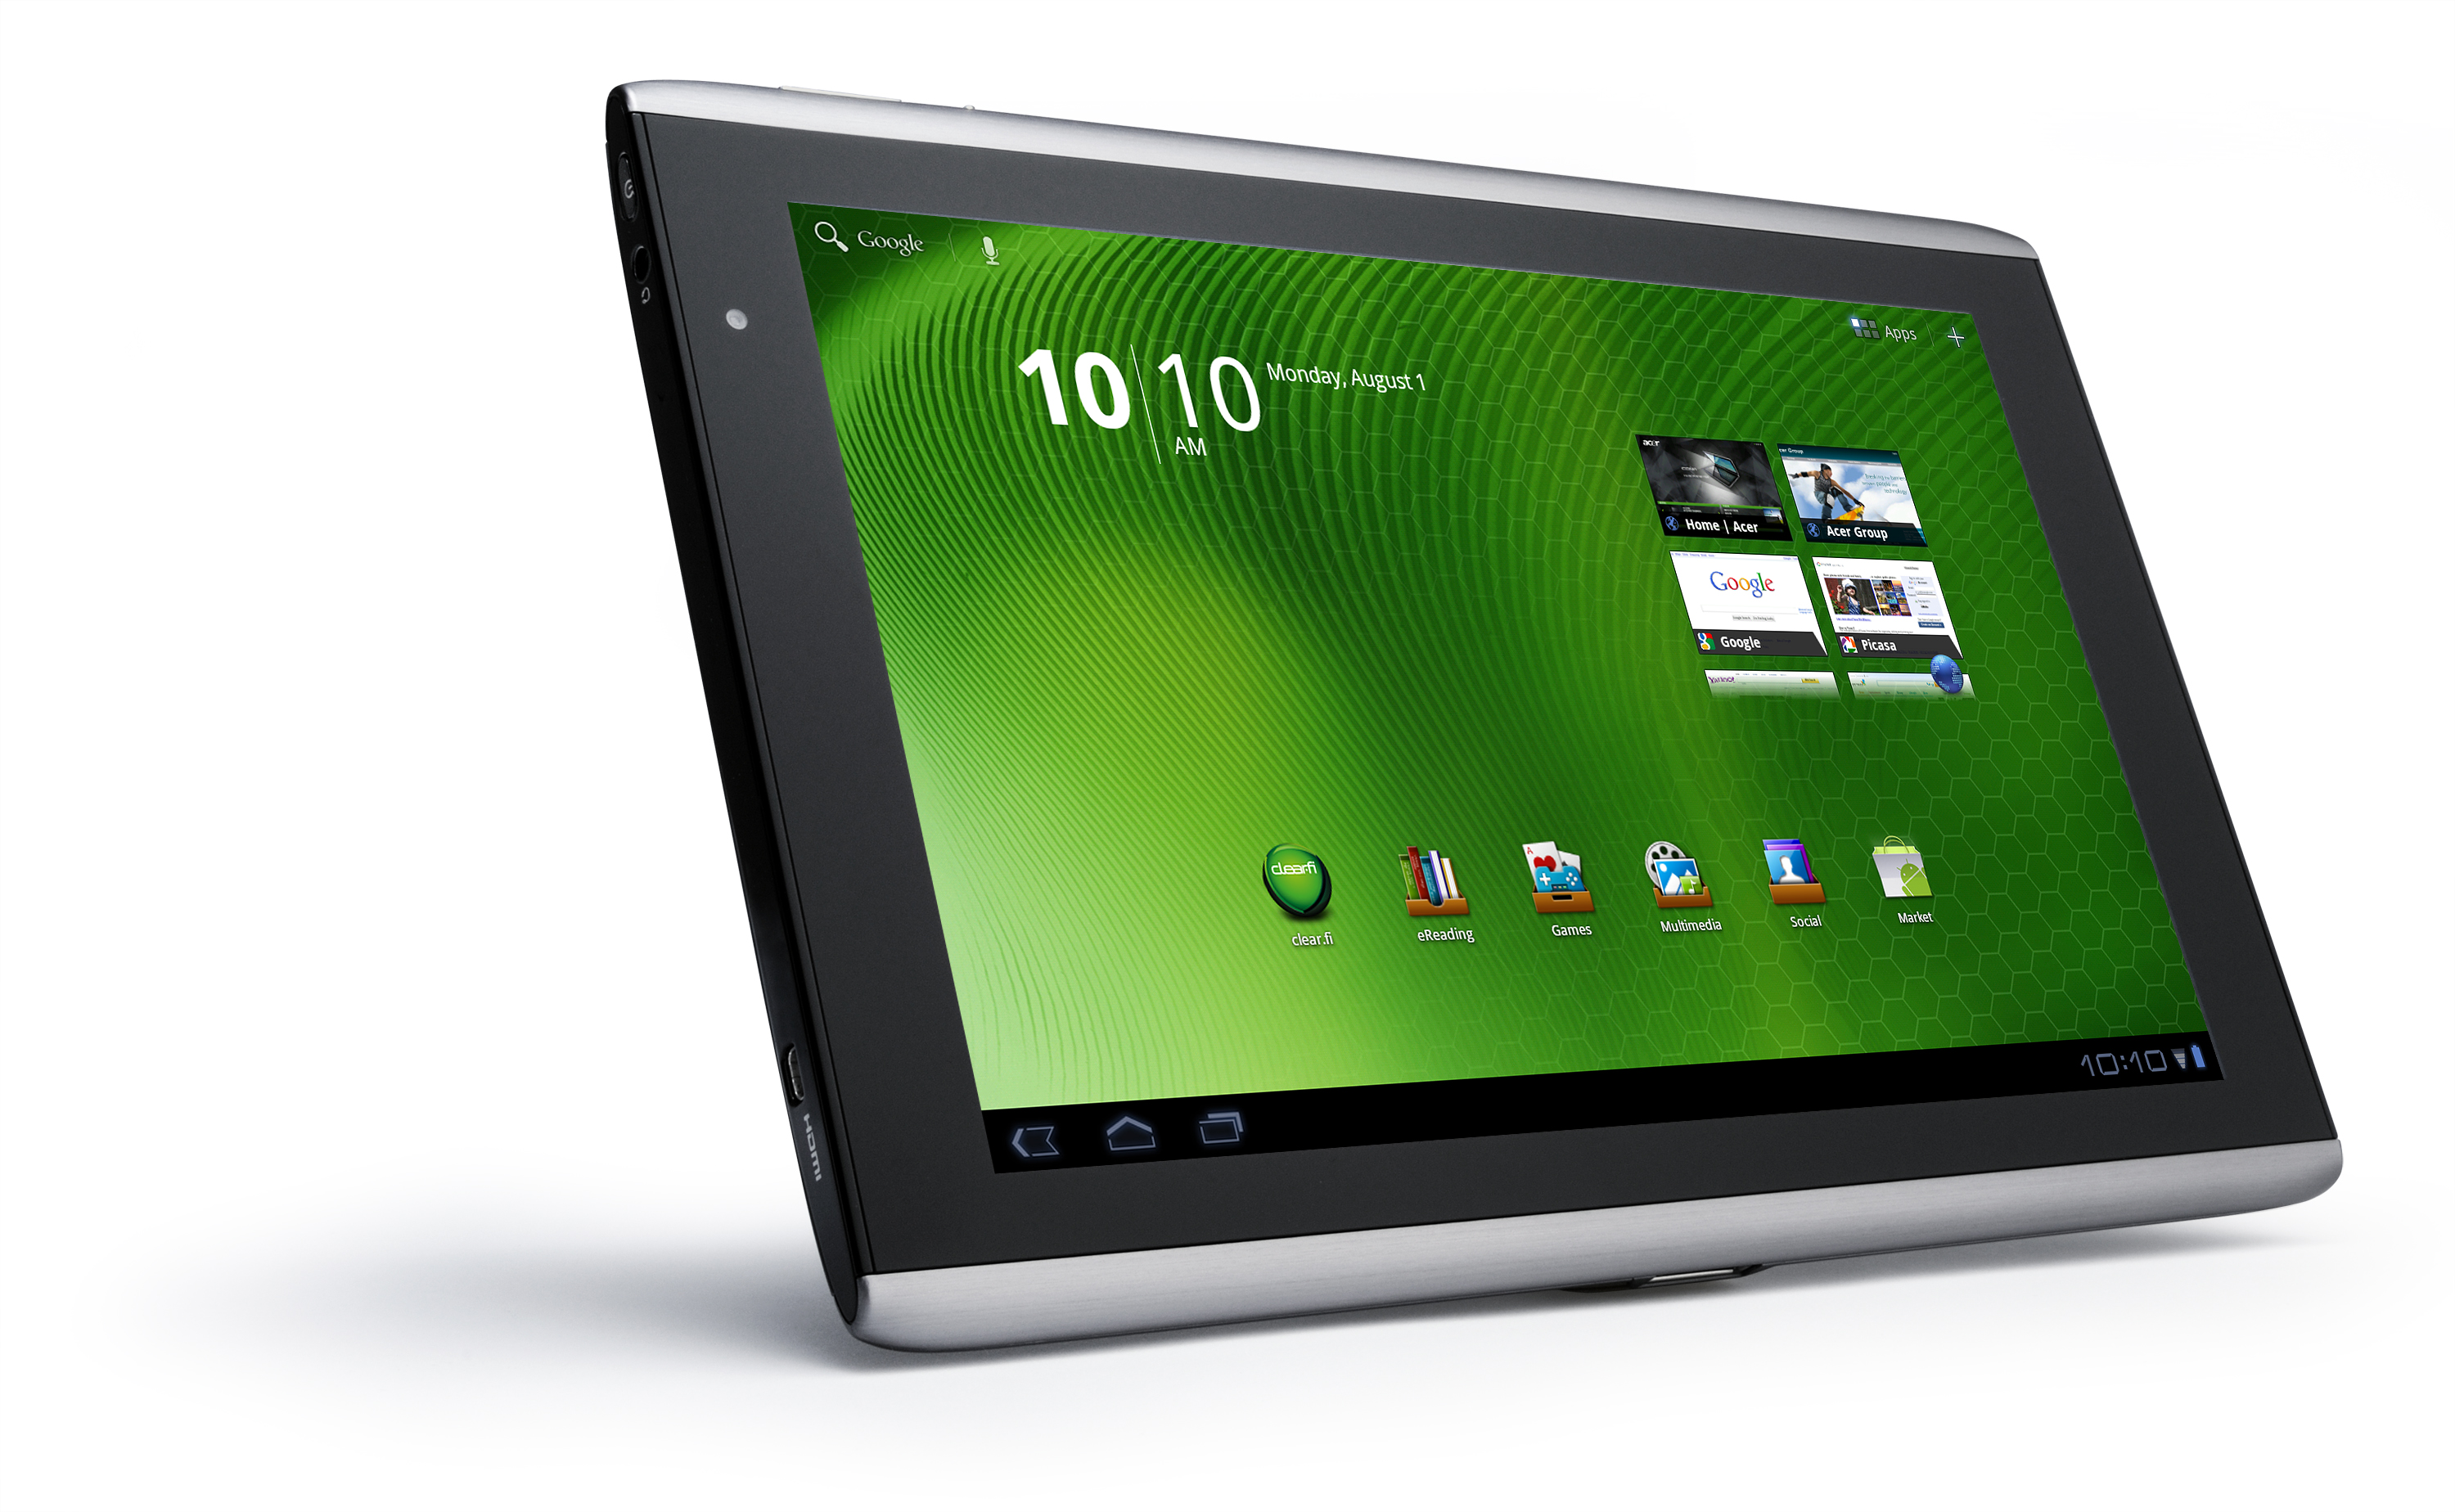 acer iconia 10 inch tablet tegra 2 1ghz 16gb a500 10s16w. Black Bedroom Furniture Sets. Home Design Ideas